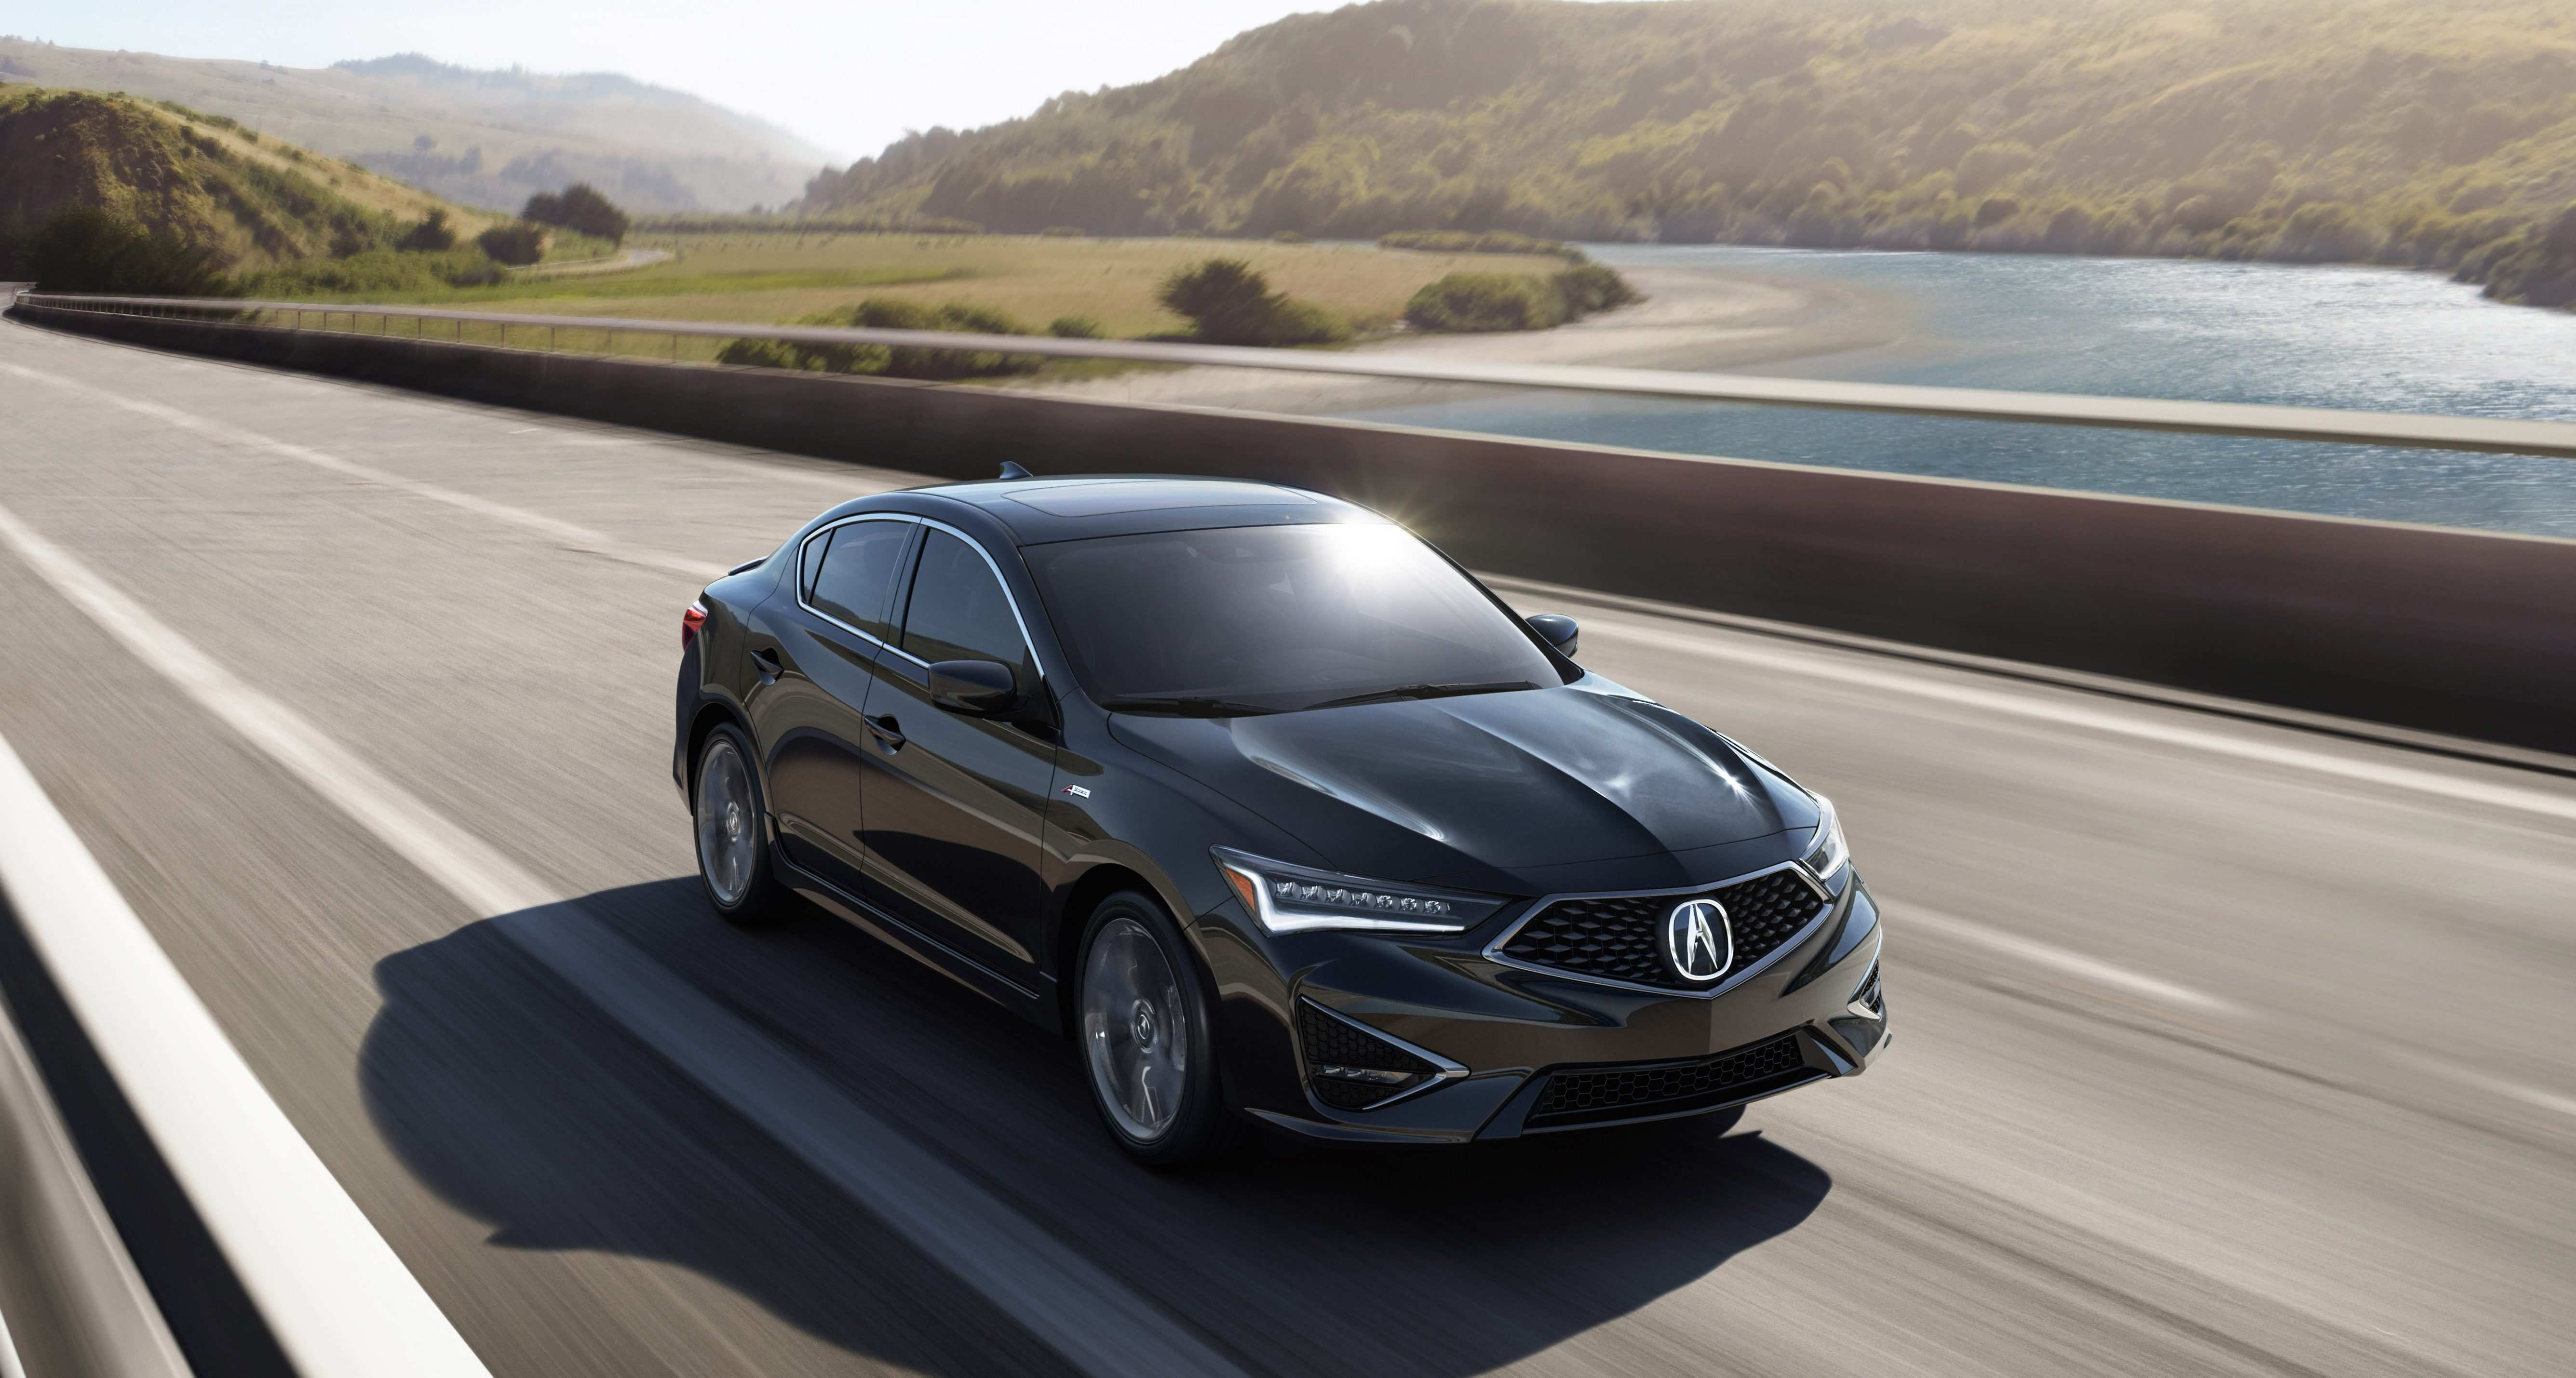 22 Concept of 2019 Acura Ilx Style for 2019 Acura Ilx